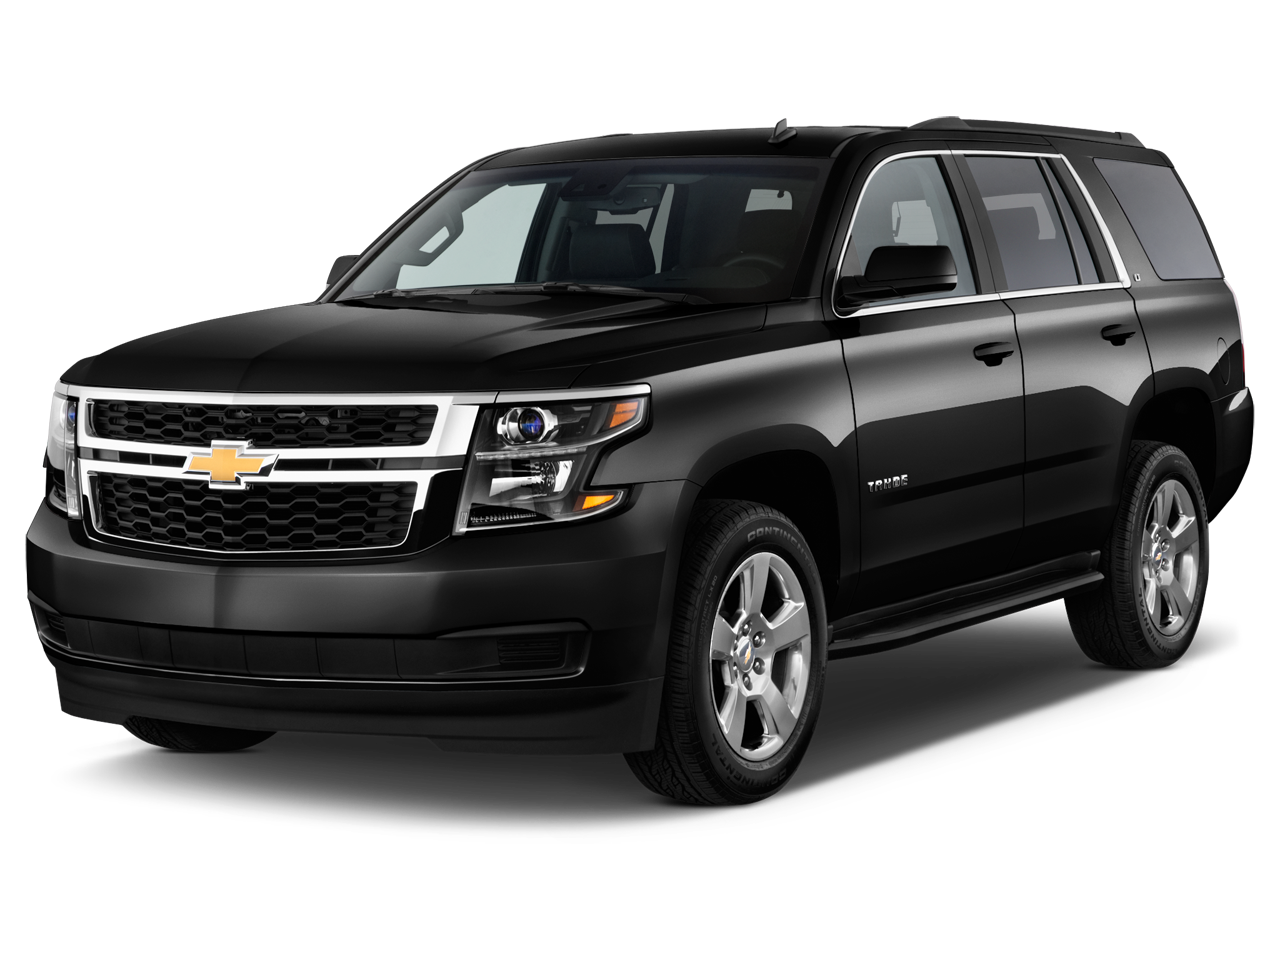 Chevy Suburban Suv Luxurious Suv For Transportation